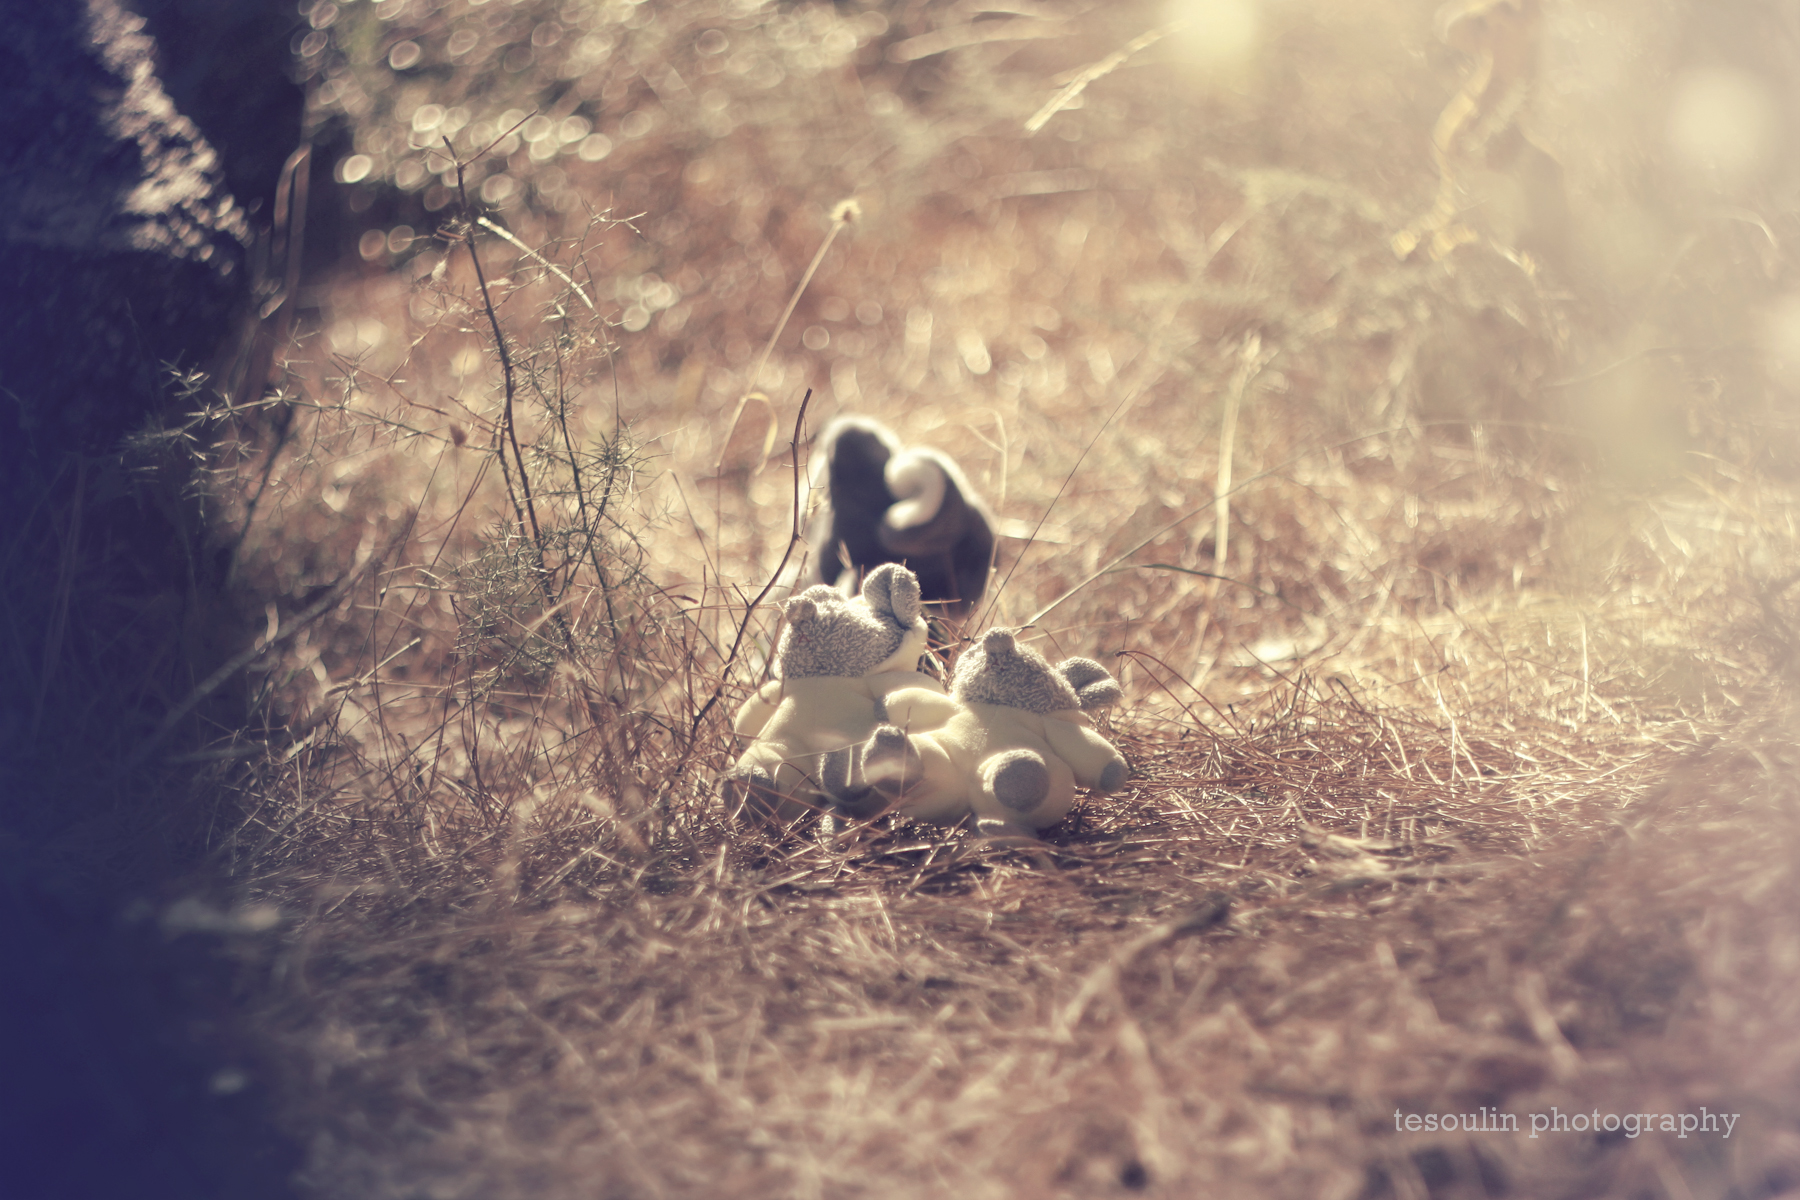 childhood-nostalgia_-2-tesoulin-photography.jpg